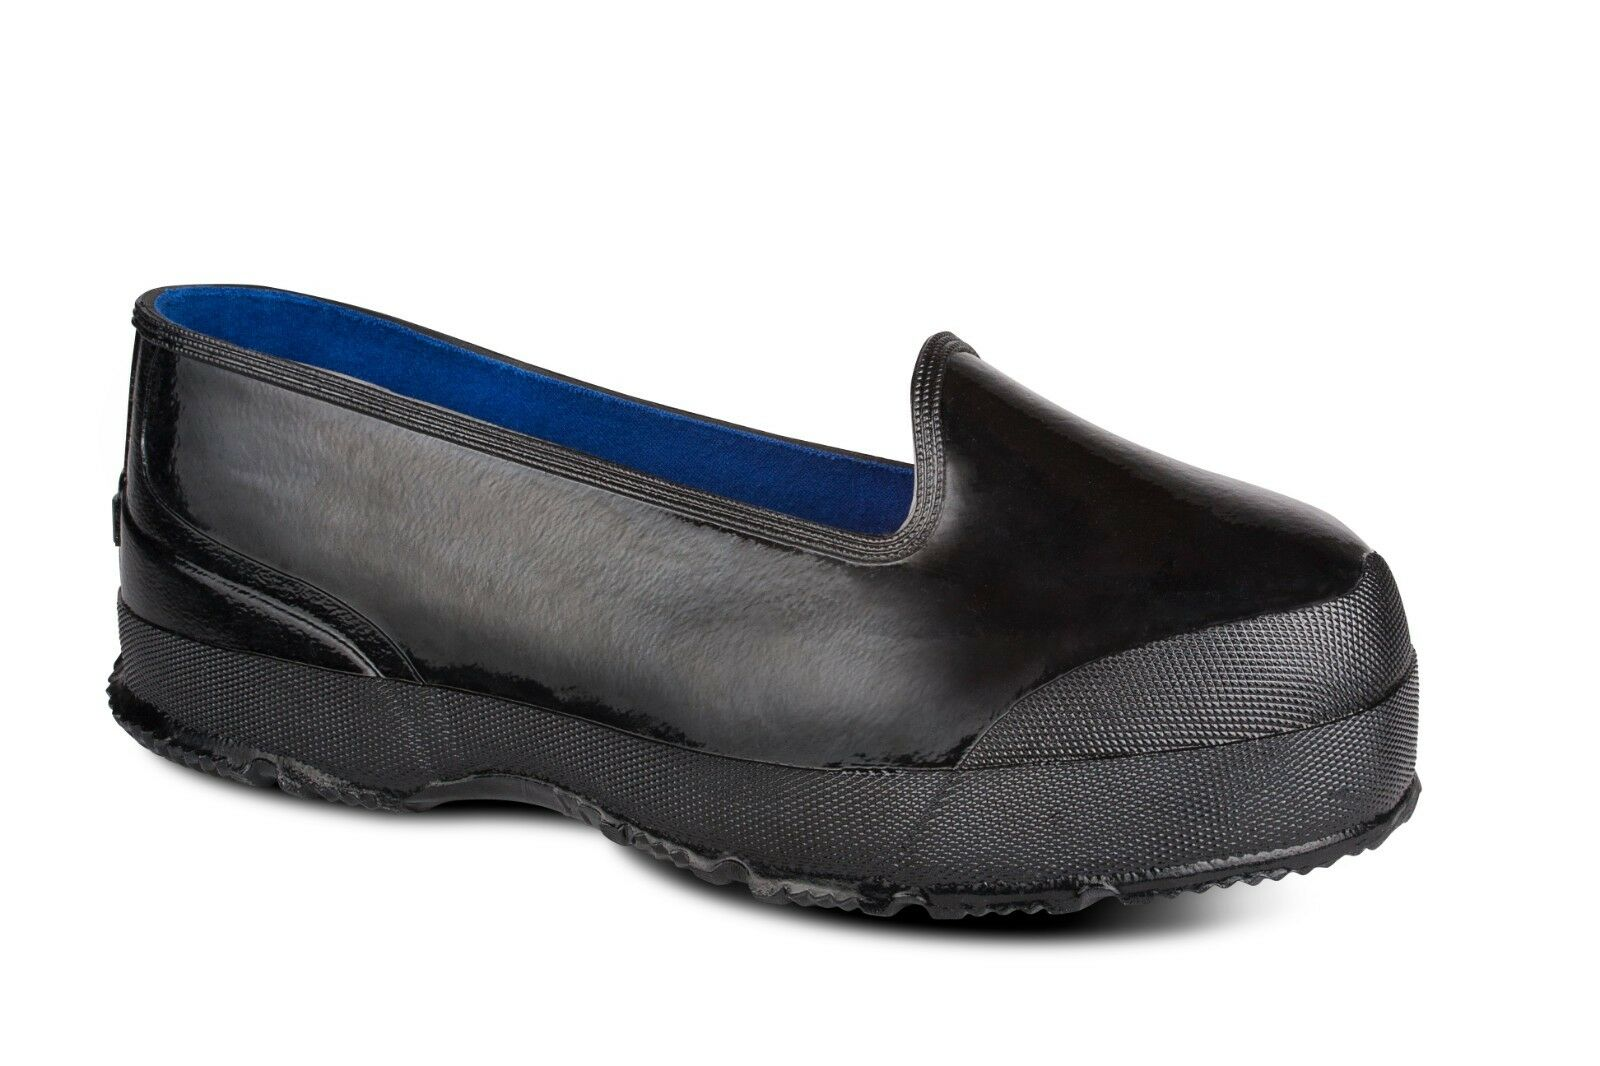 New Men's Acton ROBSON WIDE  A1305B-11 rubber overshoes